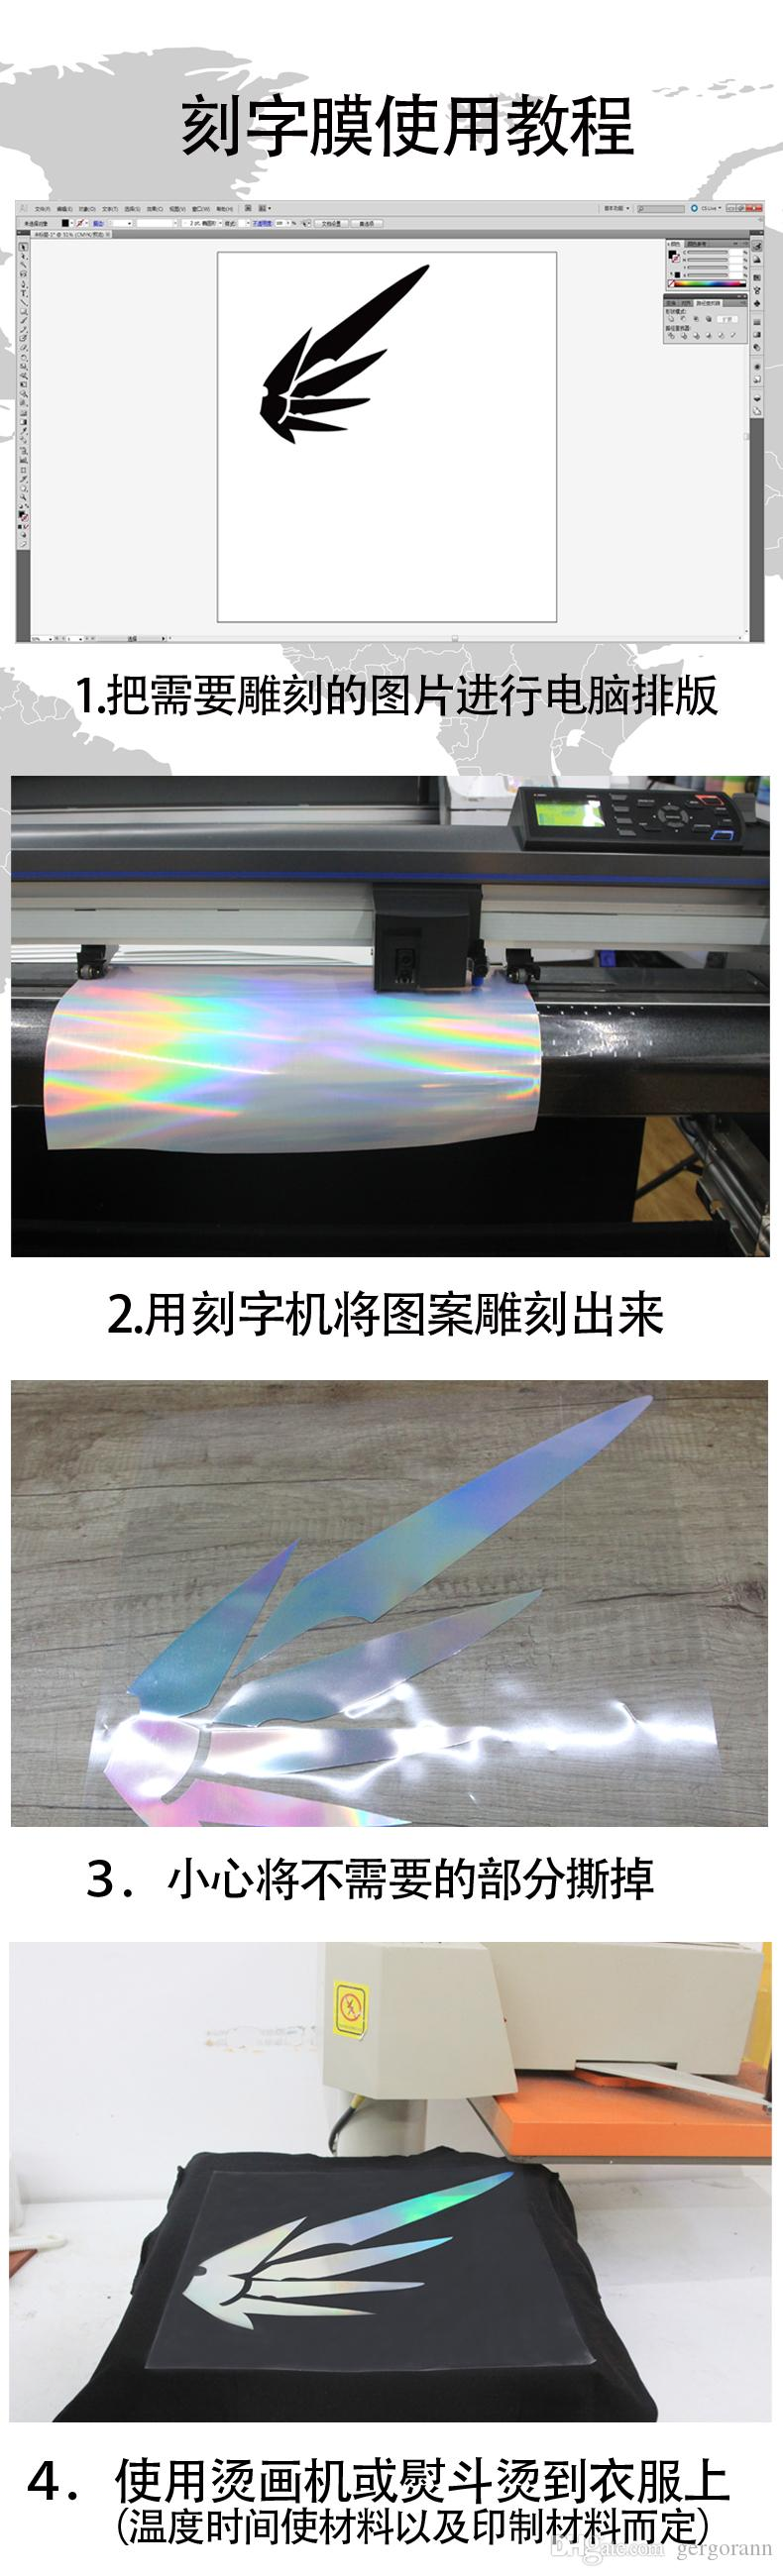 Heat transfer PVC reflective strip 100m length for traffic police cloth,5cm wide,good quality